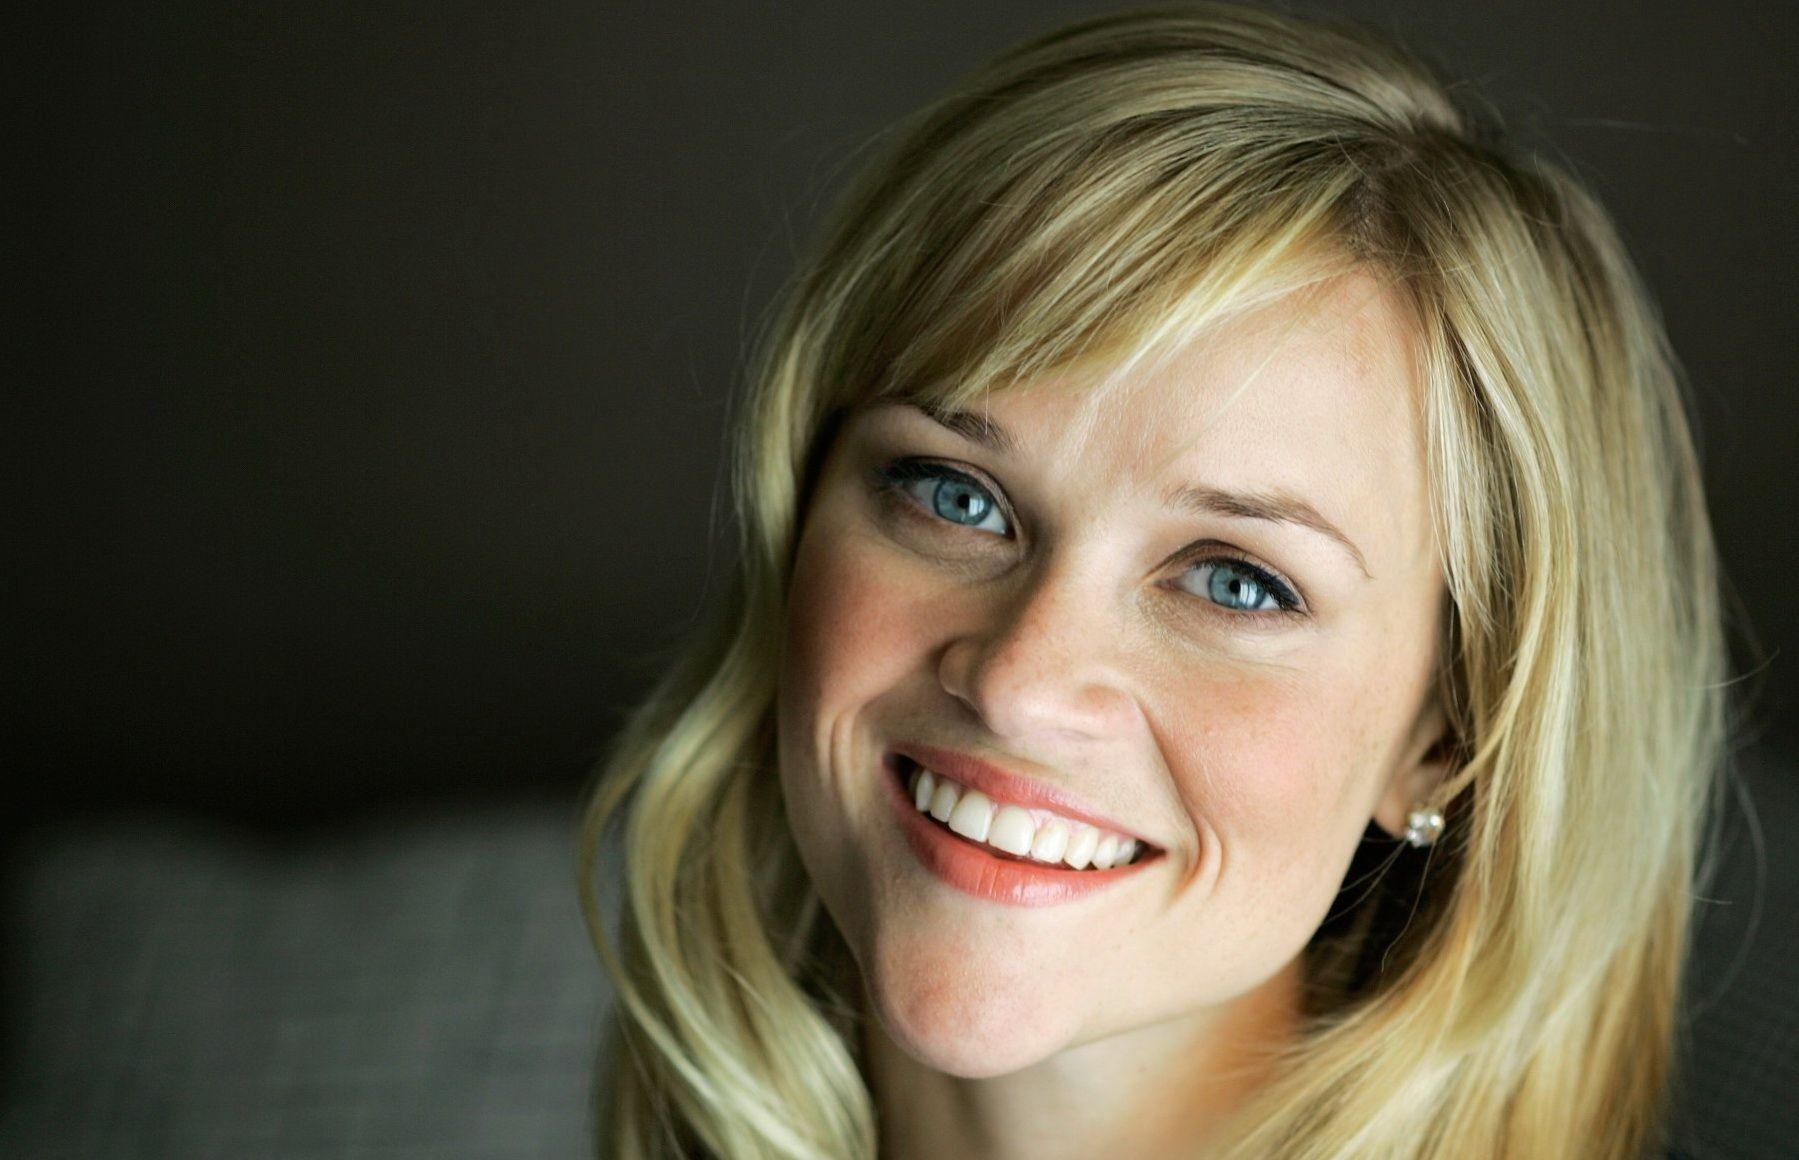 Reese Witherspoon HD Wallpapers for desktop download